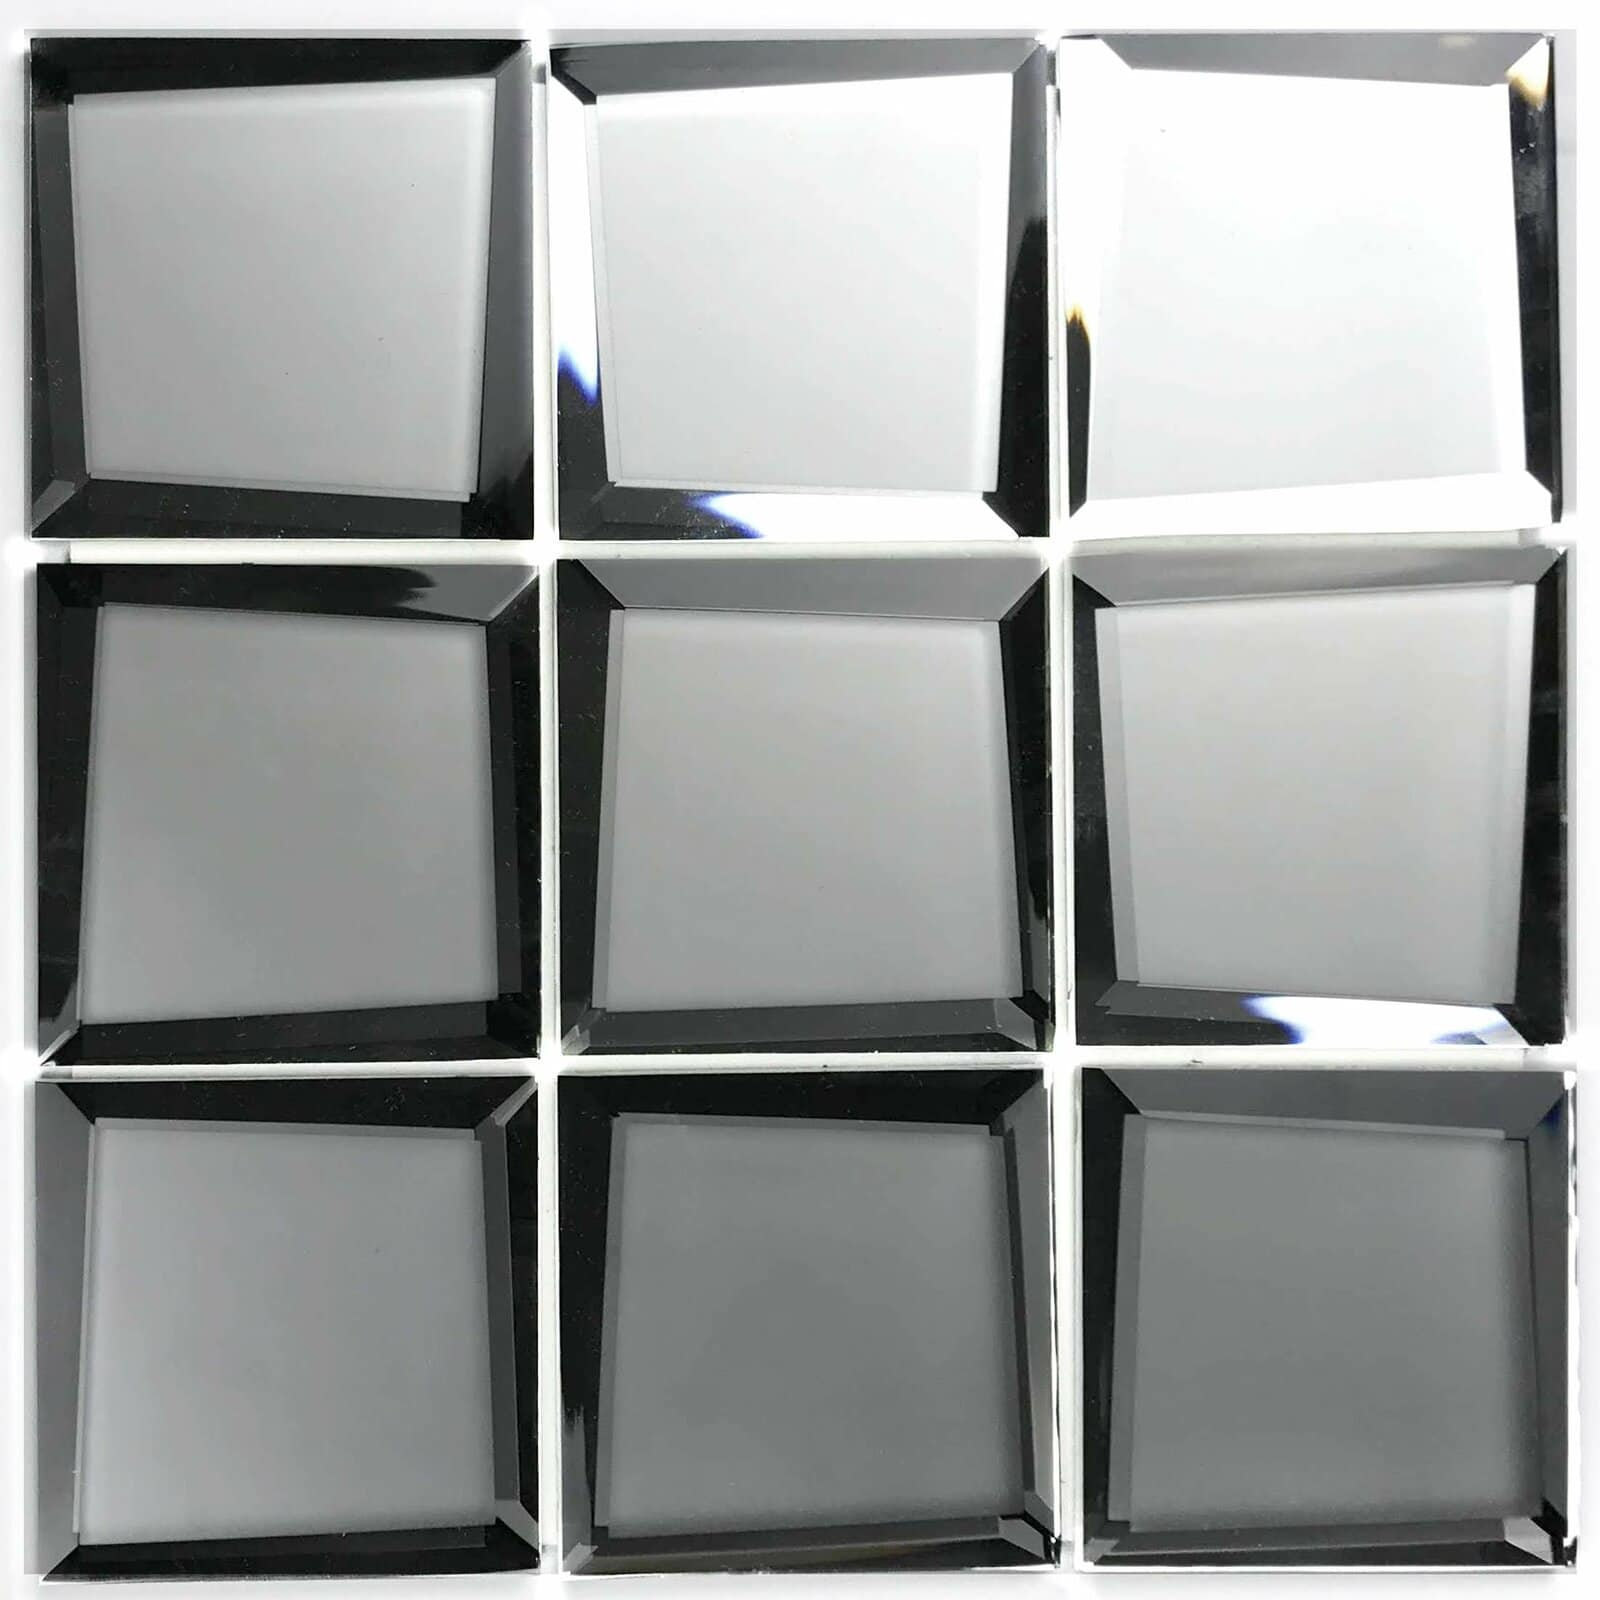 Try Beveled Mirror Tiles - Especially for Dark Rooms or Low Ceilings